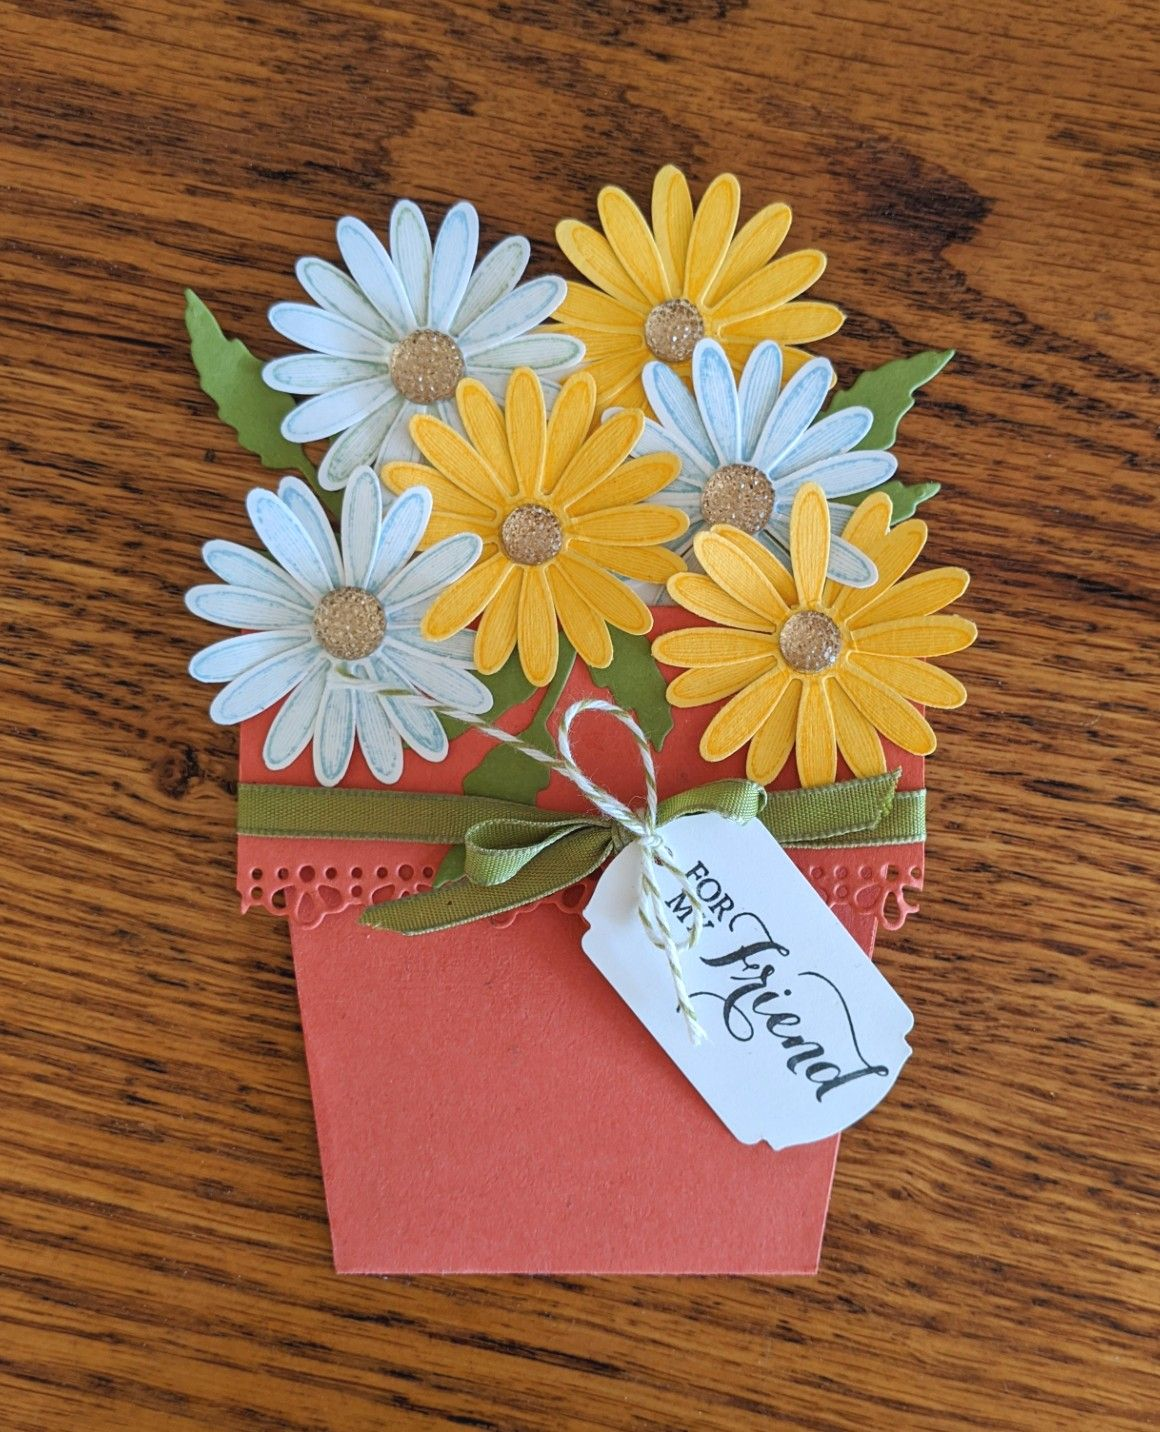 How To Make A Flower Pot Card Papertreecreations Daisy Cards Card Making Greeting Cards Handmade